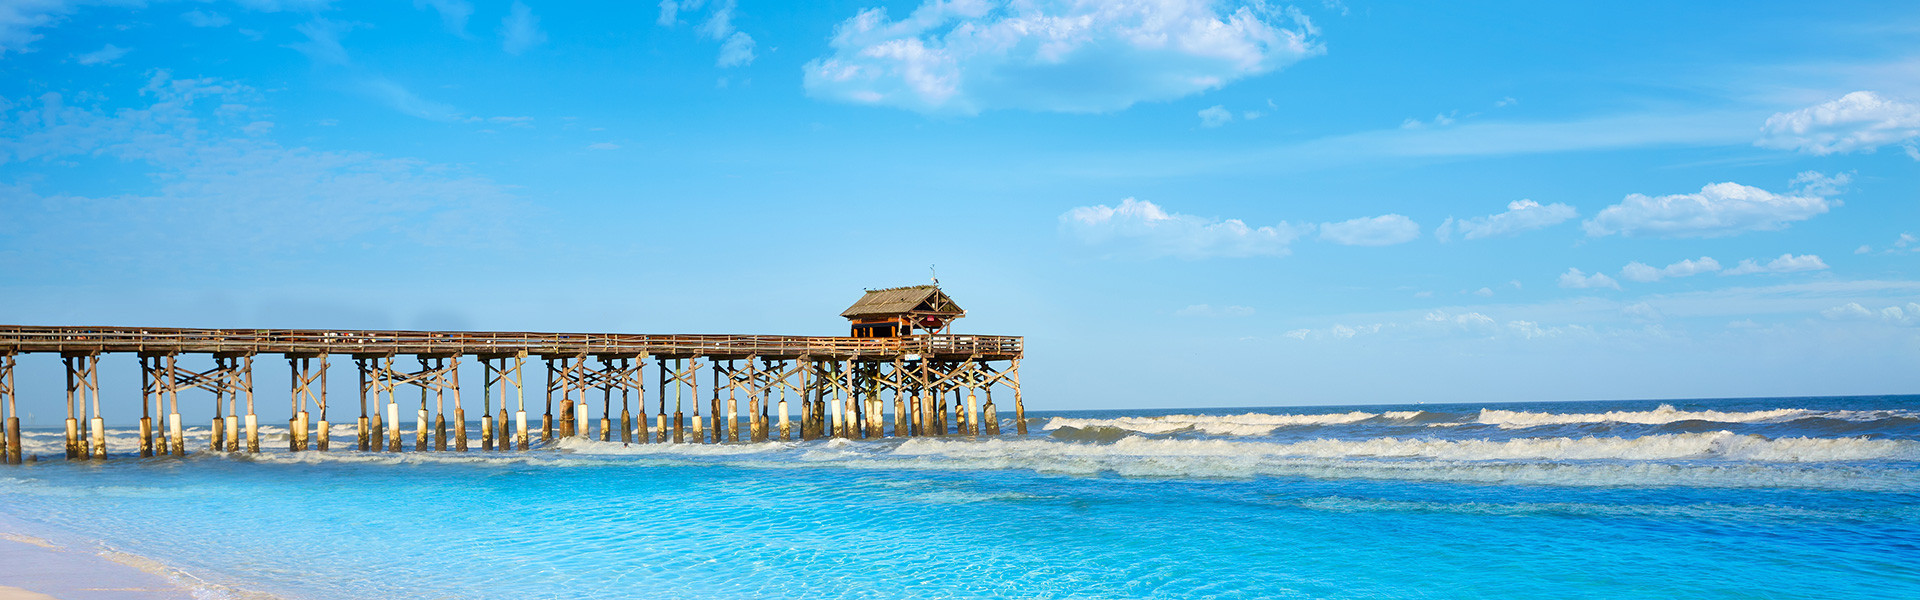 Experience Cocoa Beach and Cocoa Beach Pier with all the best that a Cocoa Beach, FL Hotel Resort has to Offer! | Westgate Cocoa Beach Resort